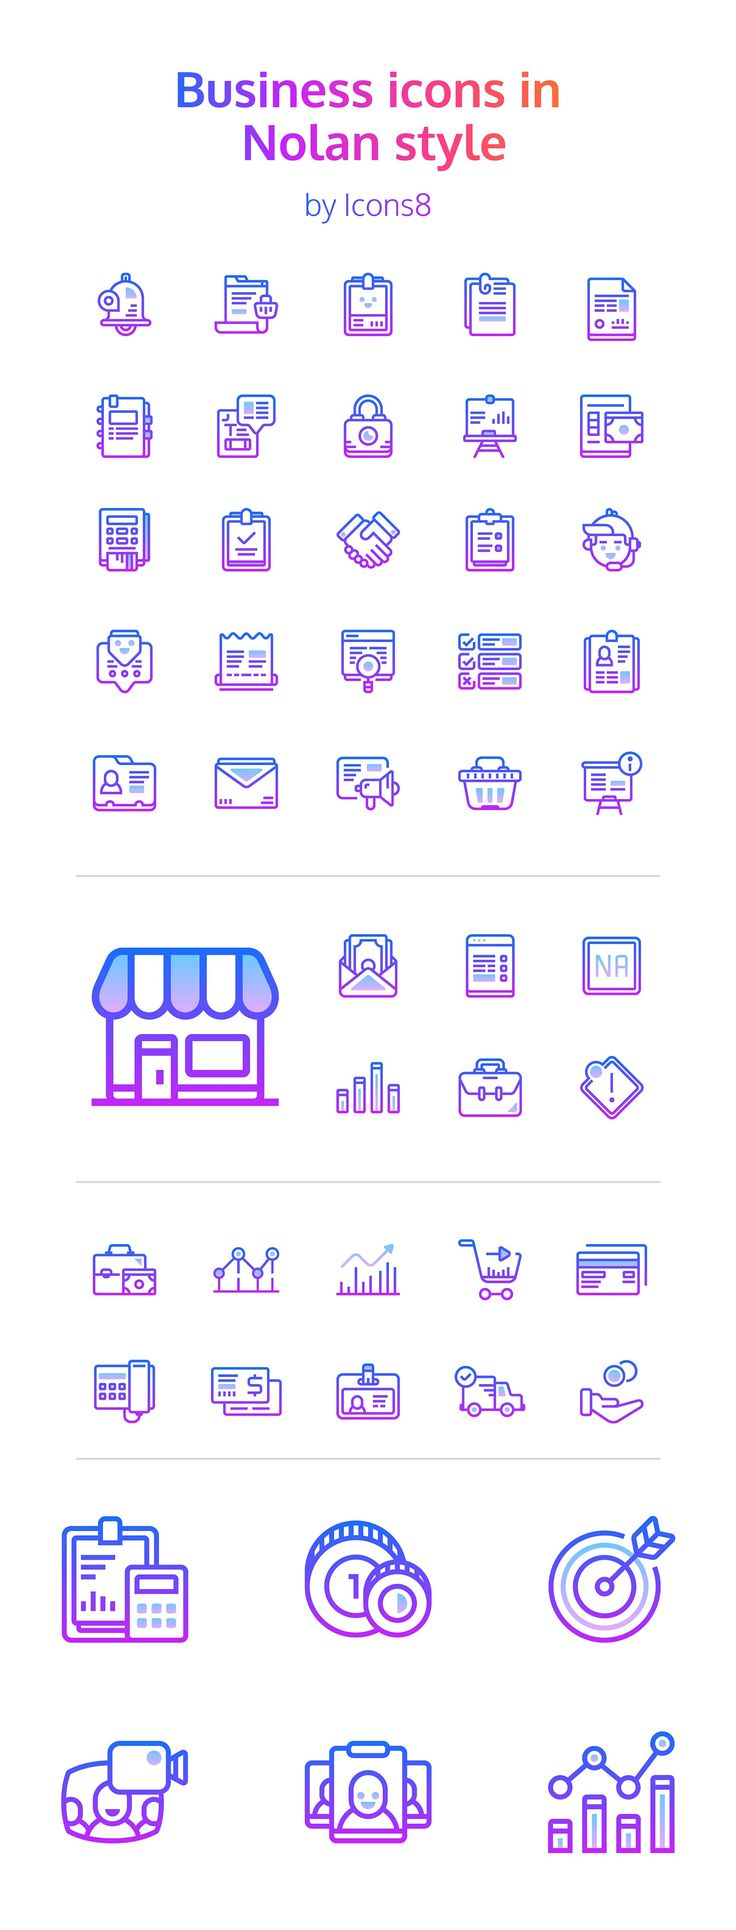 "We can never get enough icons, especially icons with a fresh approach to business concepts. So we're delighted to be able to bring you this free set of icons designed by Icons8. Created in their new ""Nolan"" style, the icons are great for adding some personality to an otherwise corporate site. Startups will love them, and they're super flexible. The 48 icons include UI elements like files and folders, app elements like alarms and email, and e-commerce elements like carts and charts. Some of…"